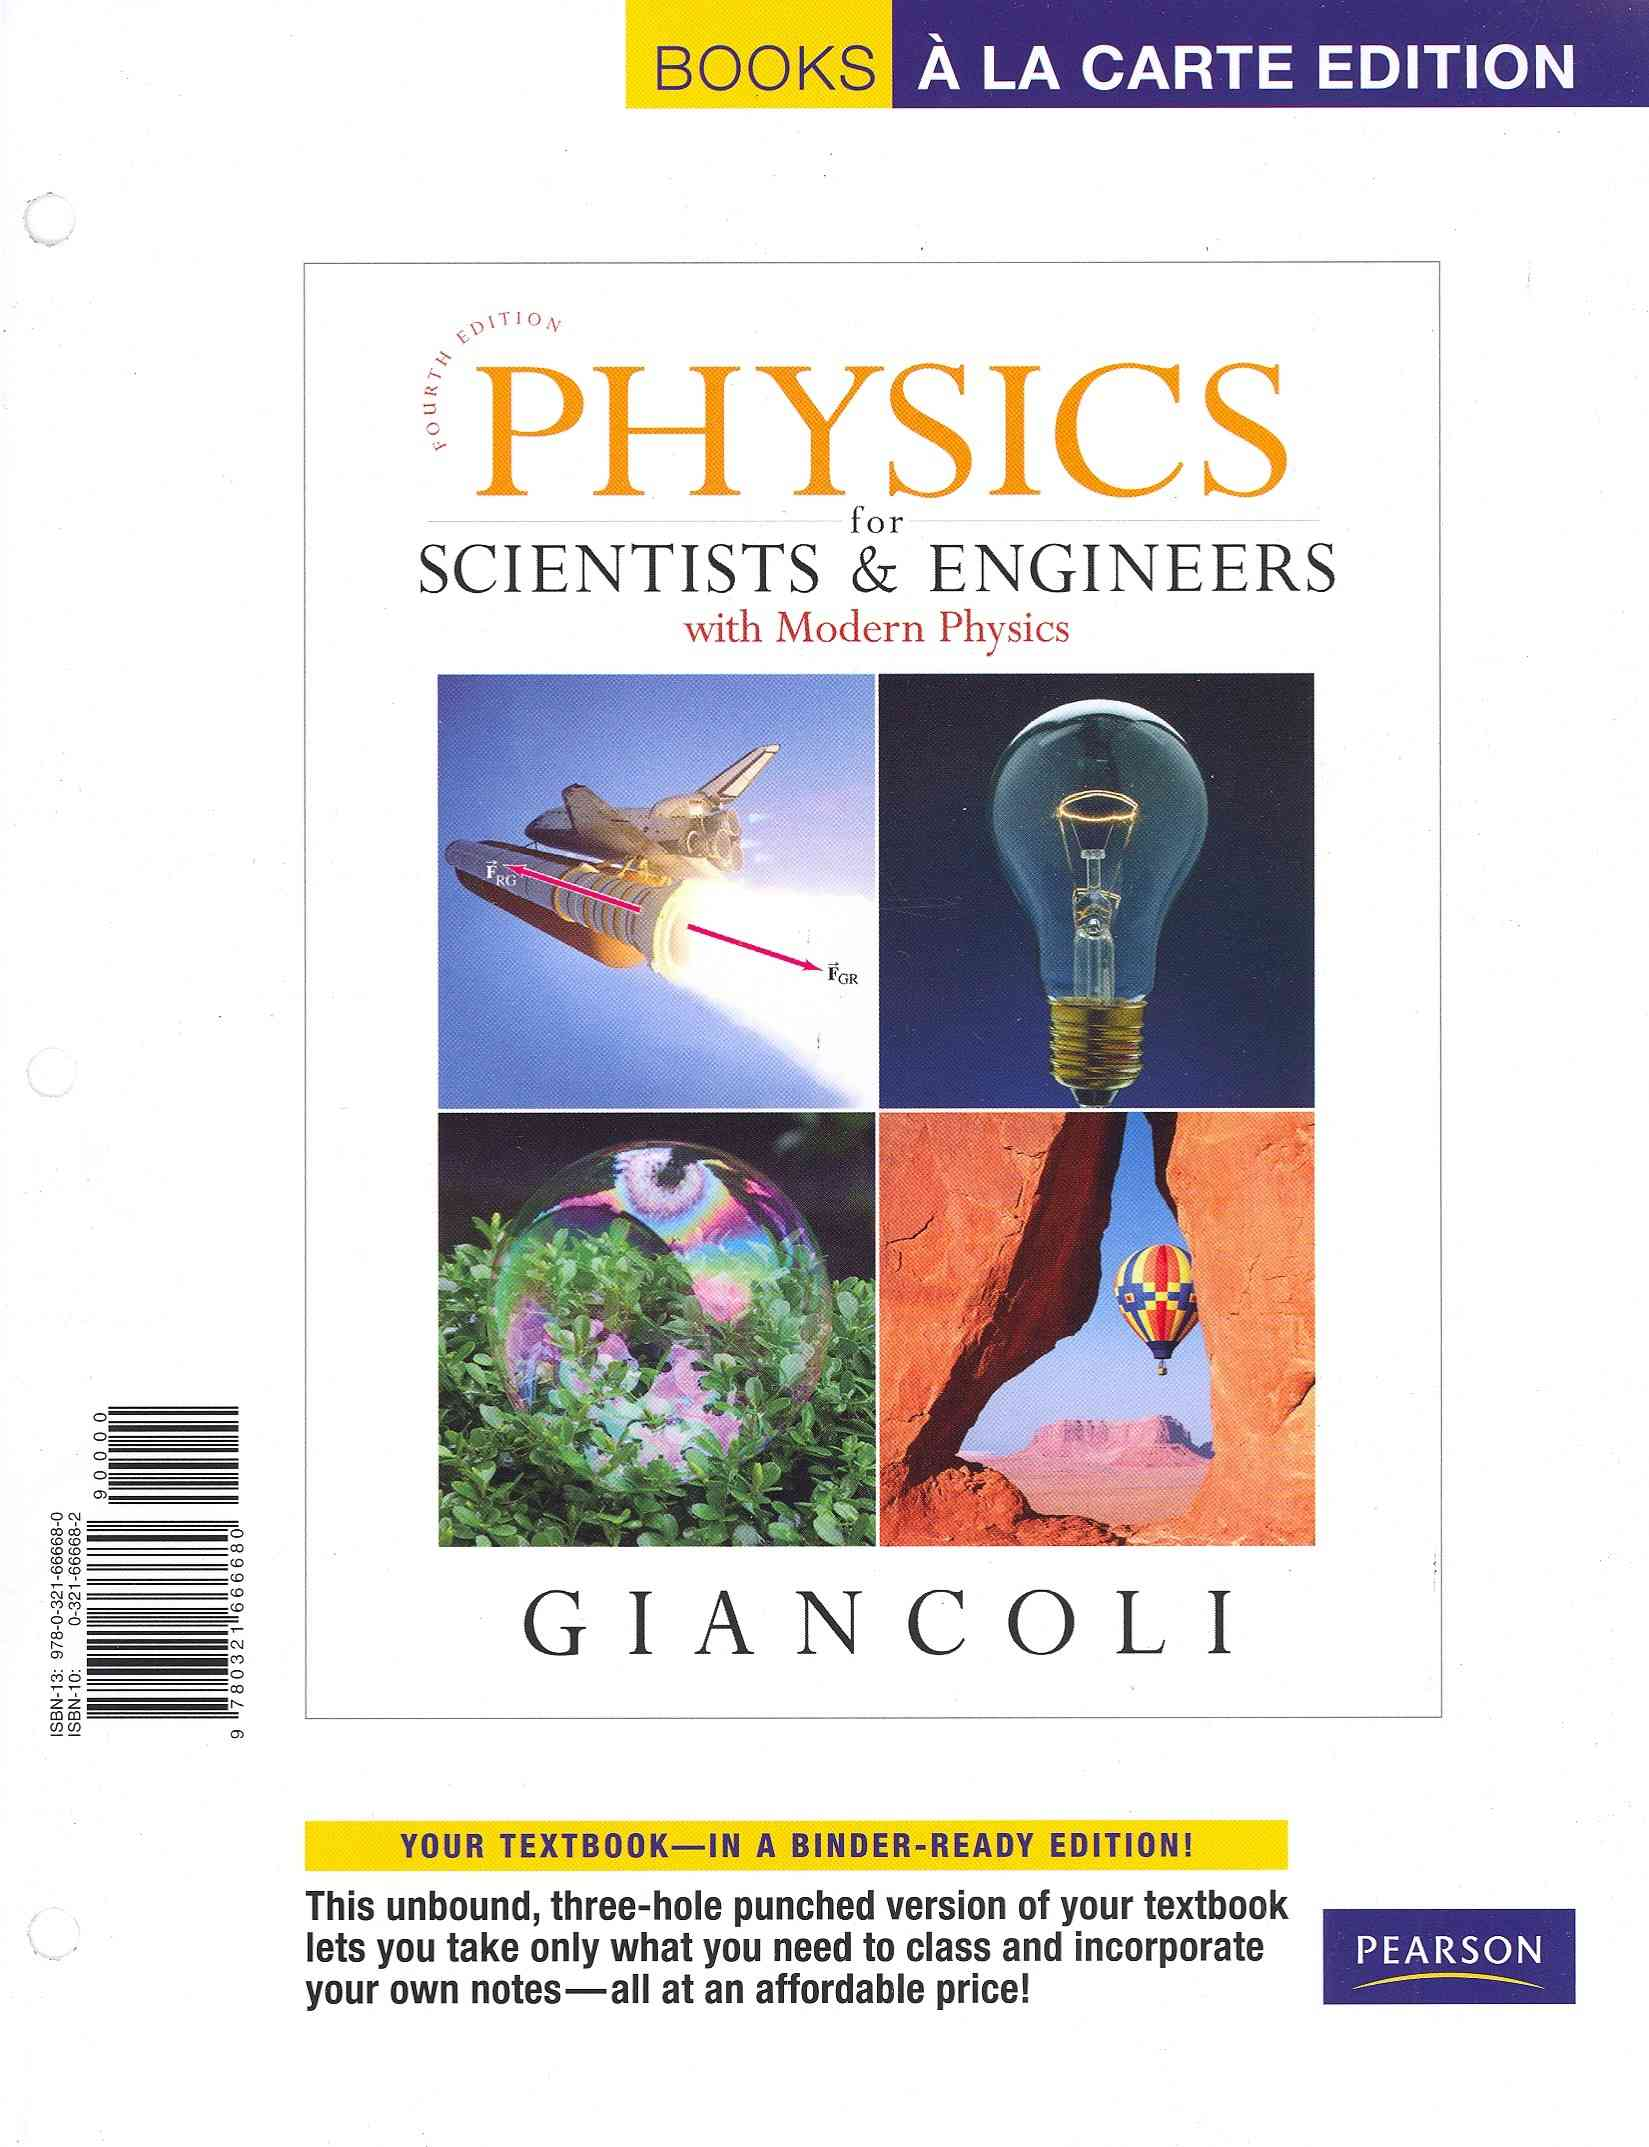 Physics for Scientists & Engineers With Modern Physics By Giancoli, Douglas C.